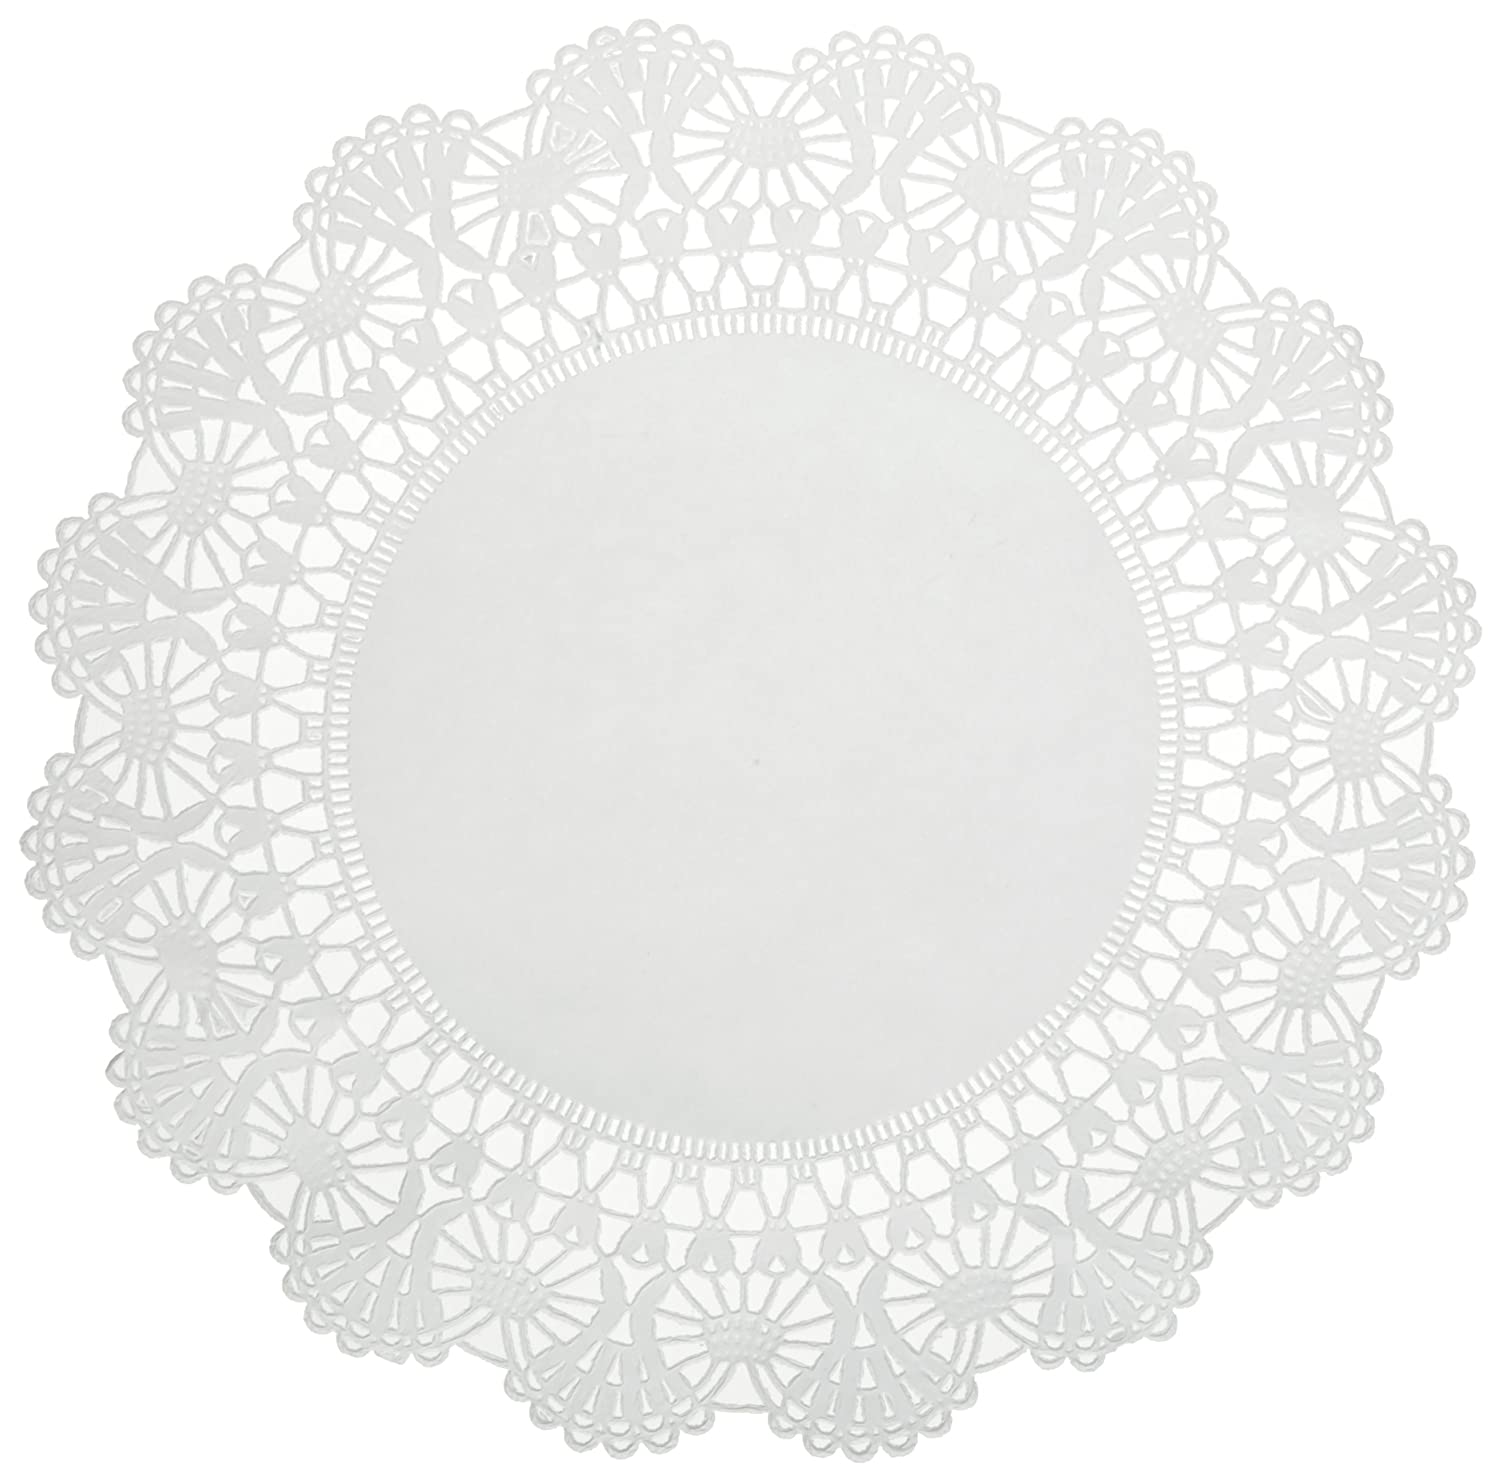 paper lace doilies No promo code required must select ground shipping at checkout oversize charges may apply valid thru sat 3/10/18 free in-store returns.